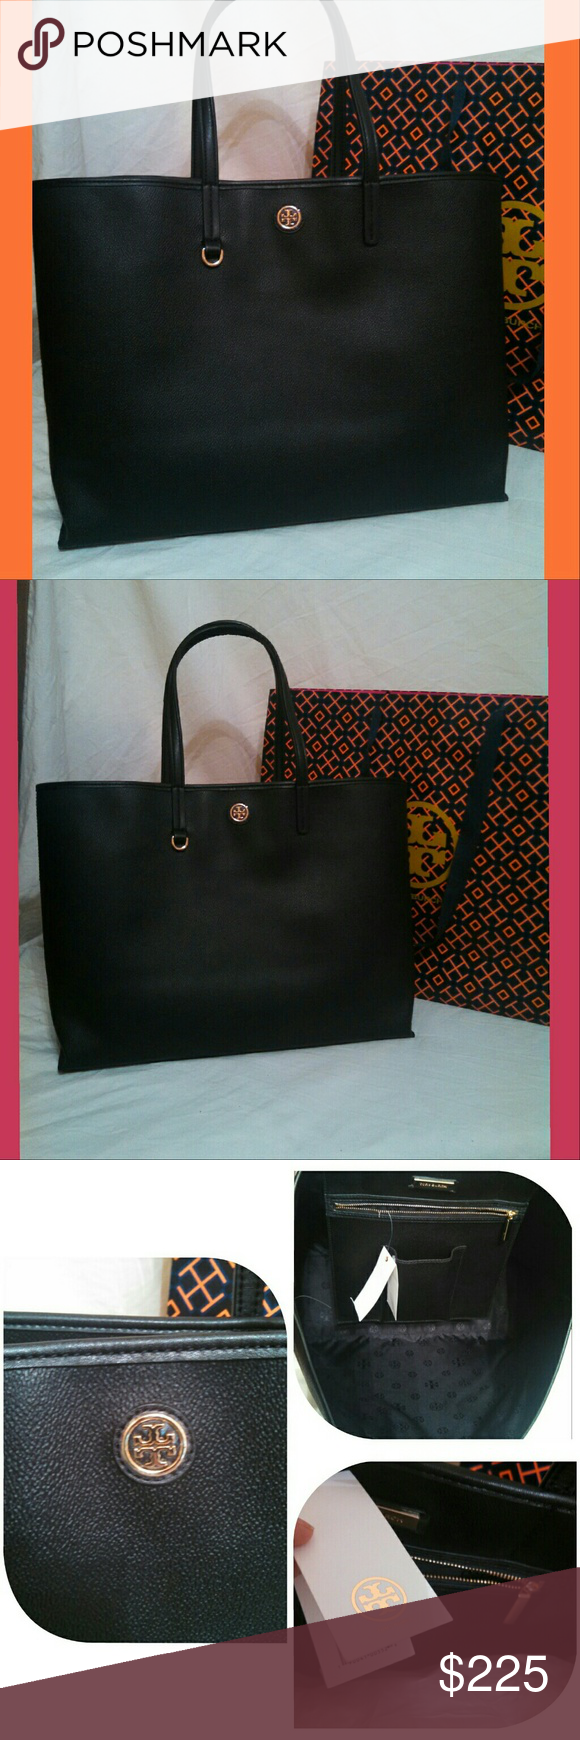 bc61b568b76 Great tote for every wardrobe. 16x12x6. Bundle and save. Happy Poshing.  Tory Burch Bags Totes